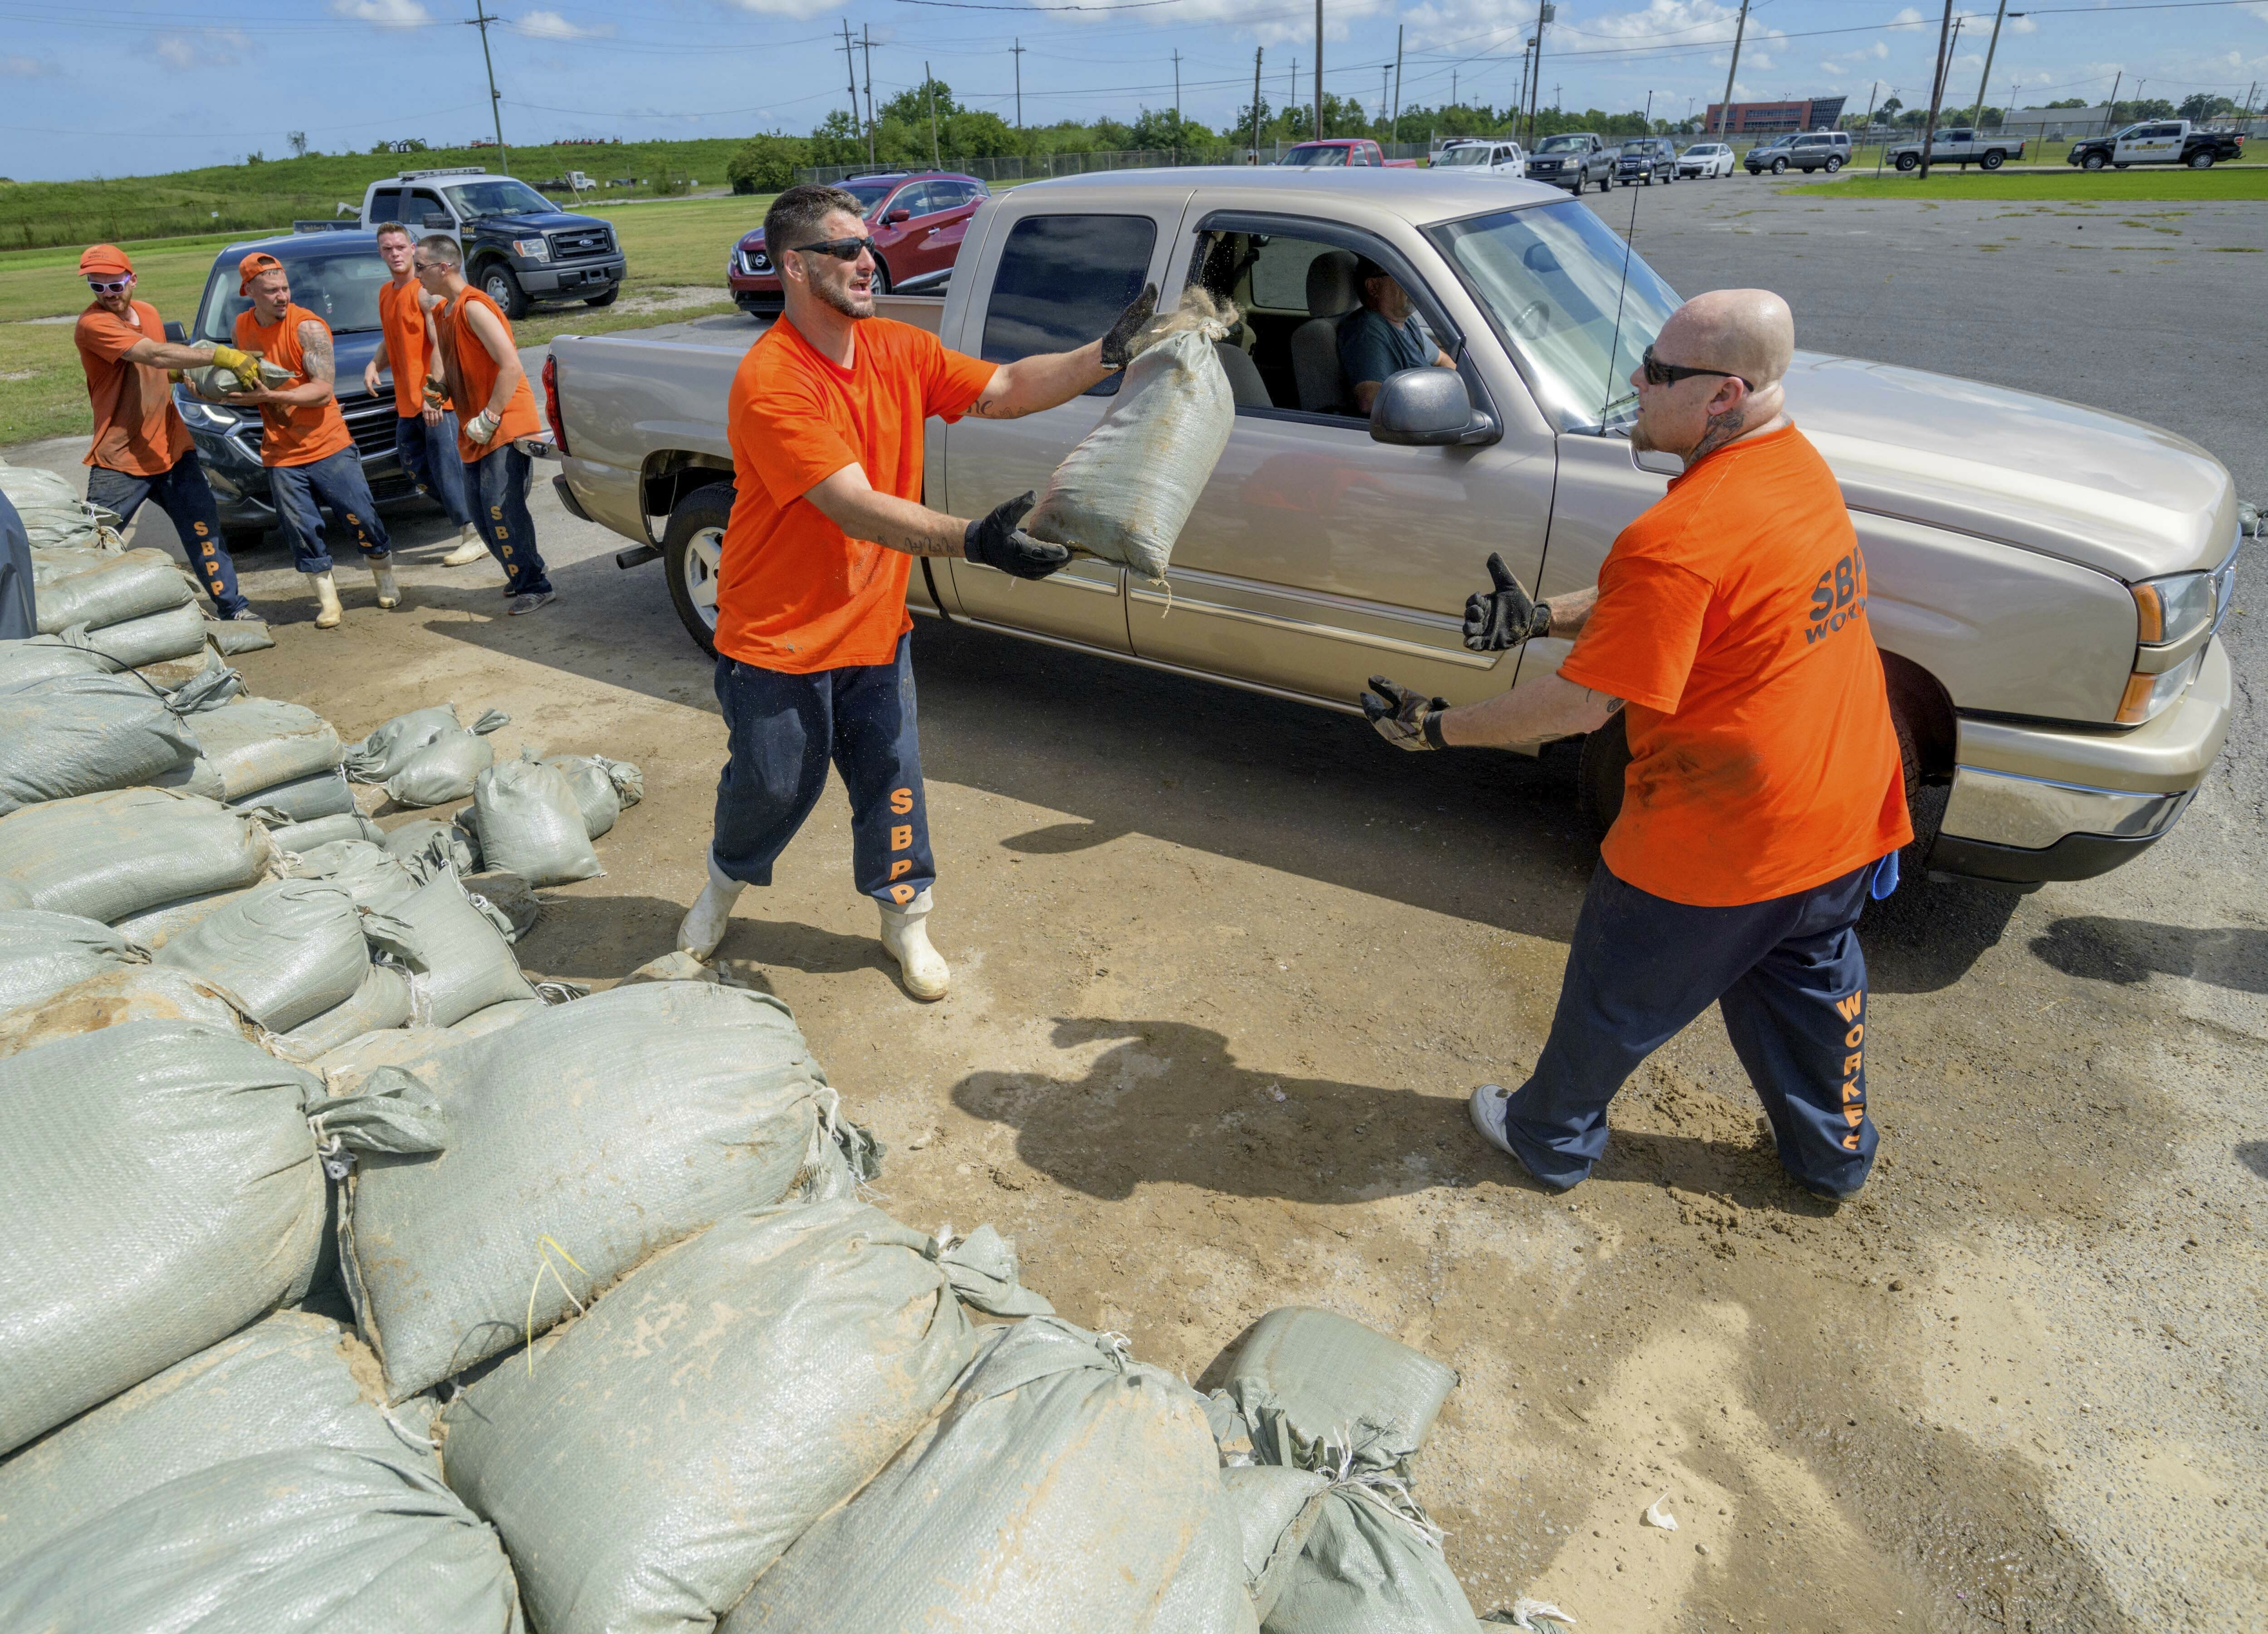 St. Bernard Parish Sheriff's Office inmate workers move free sandbags for residents in Chalmette, La., Thursday, July 11, 2019 ahead of ahead of Tropical Storm Barry from the Gulf of Mexico. (AP Photo/Matthew Hinton)